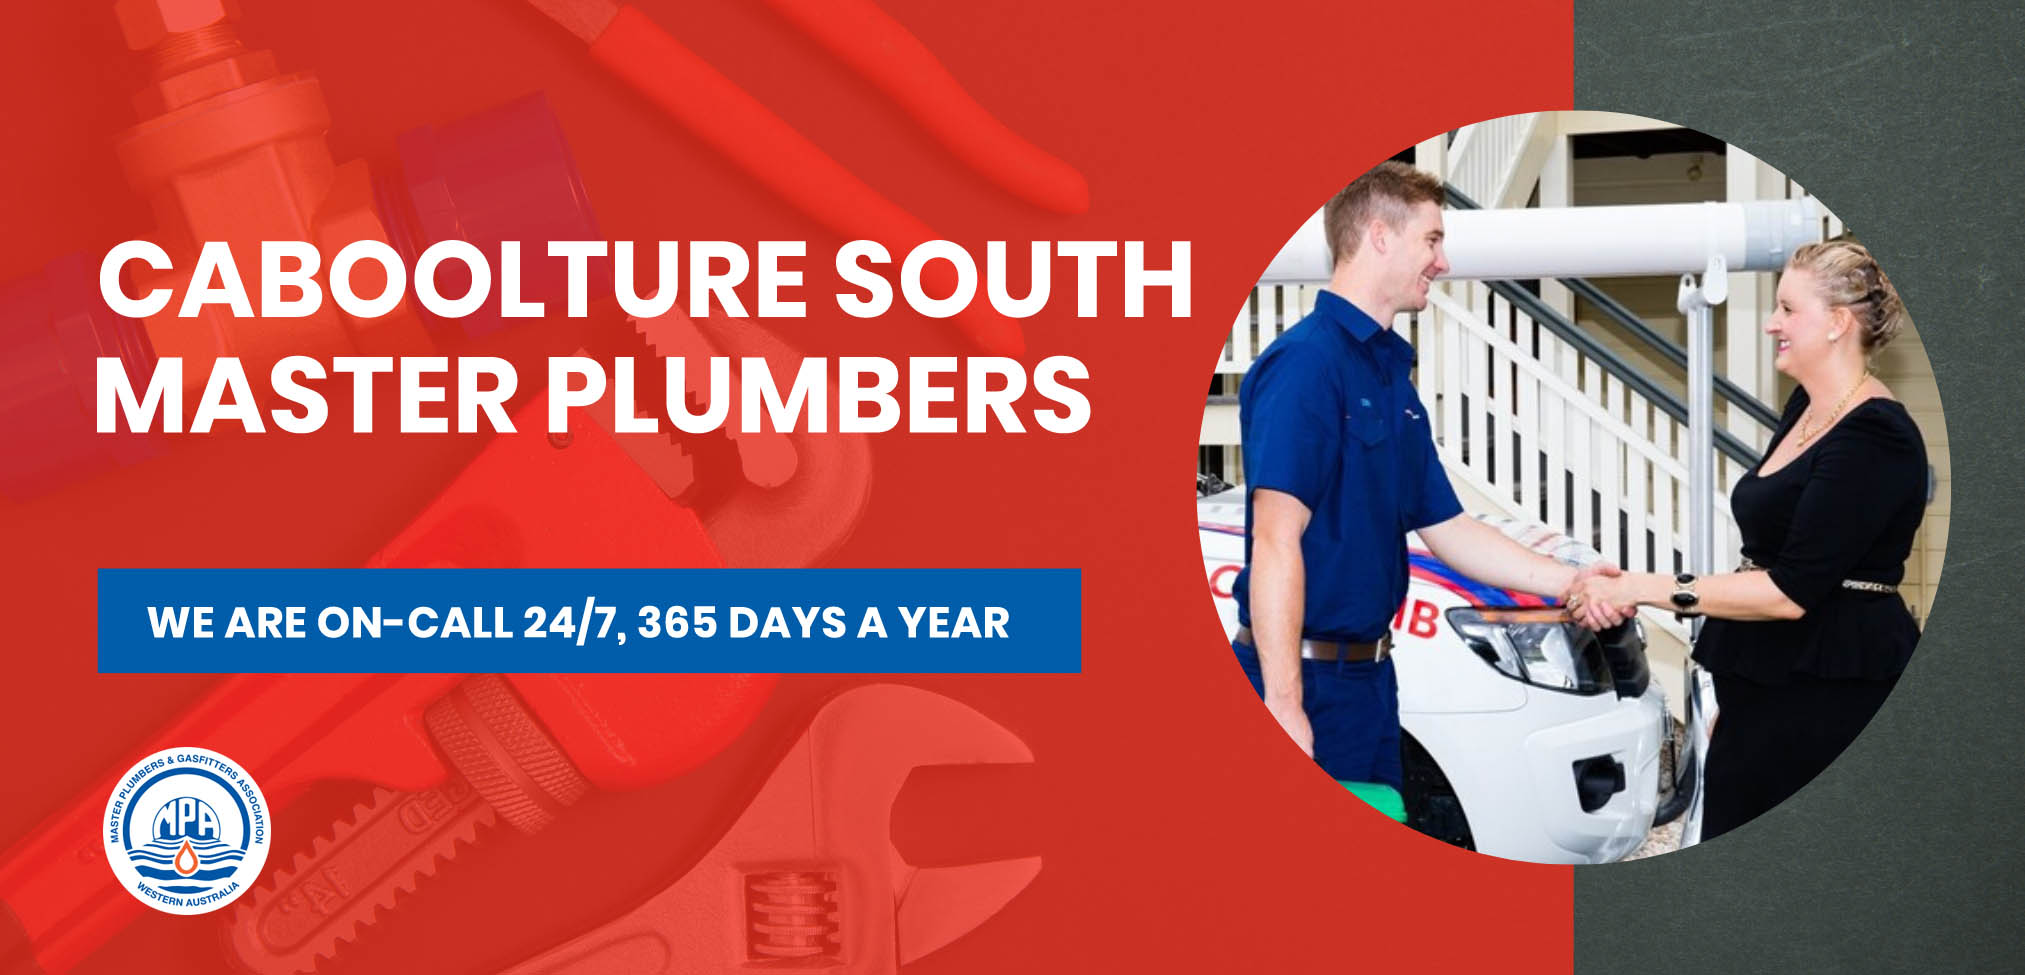 Plumber Caboolture South